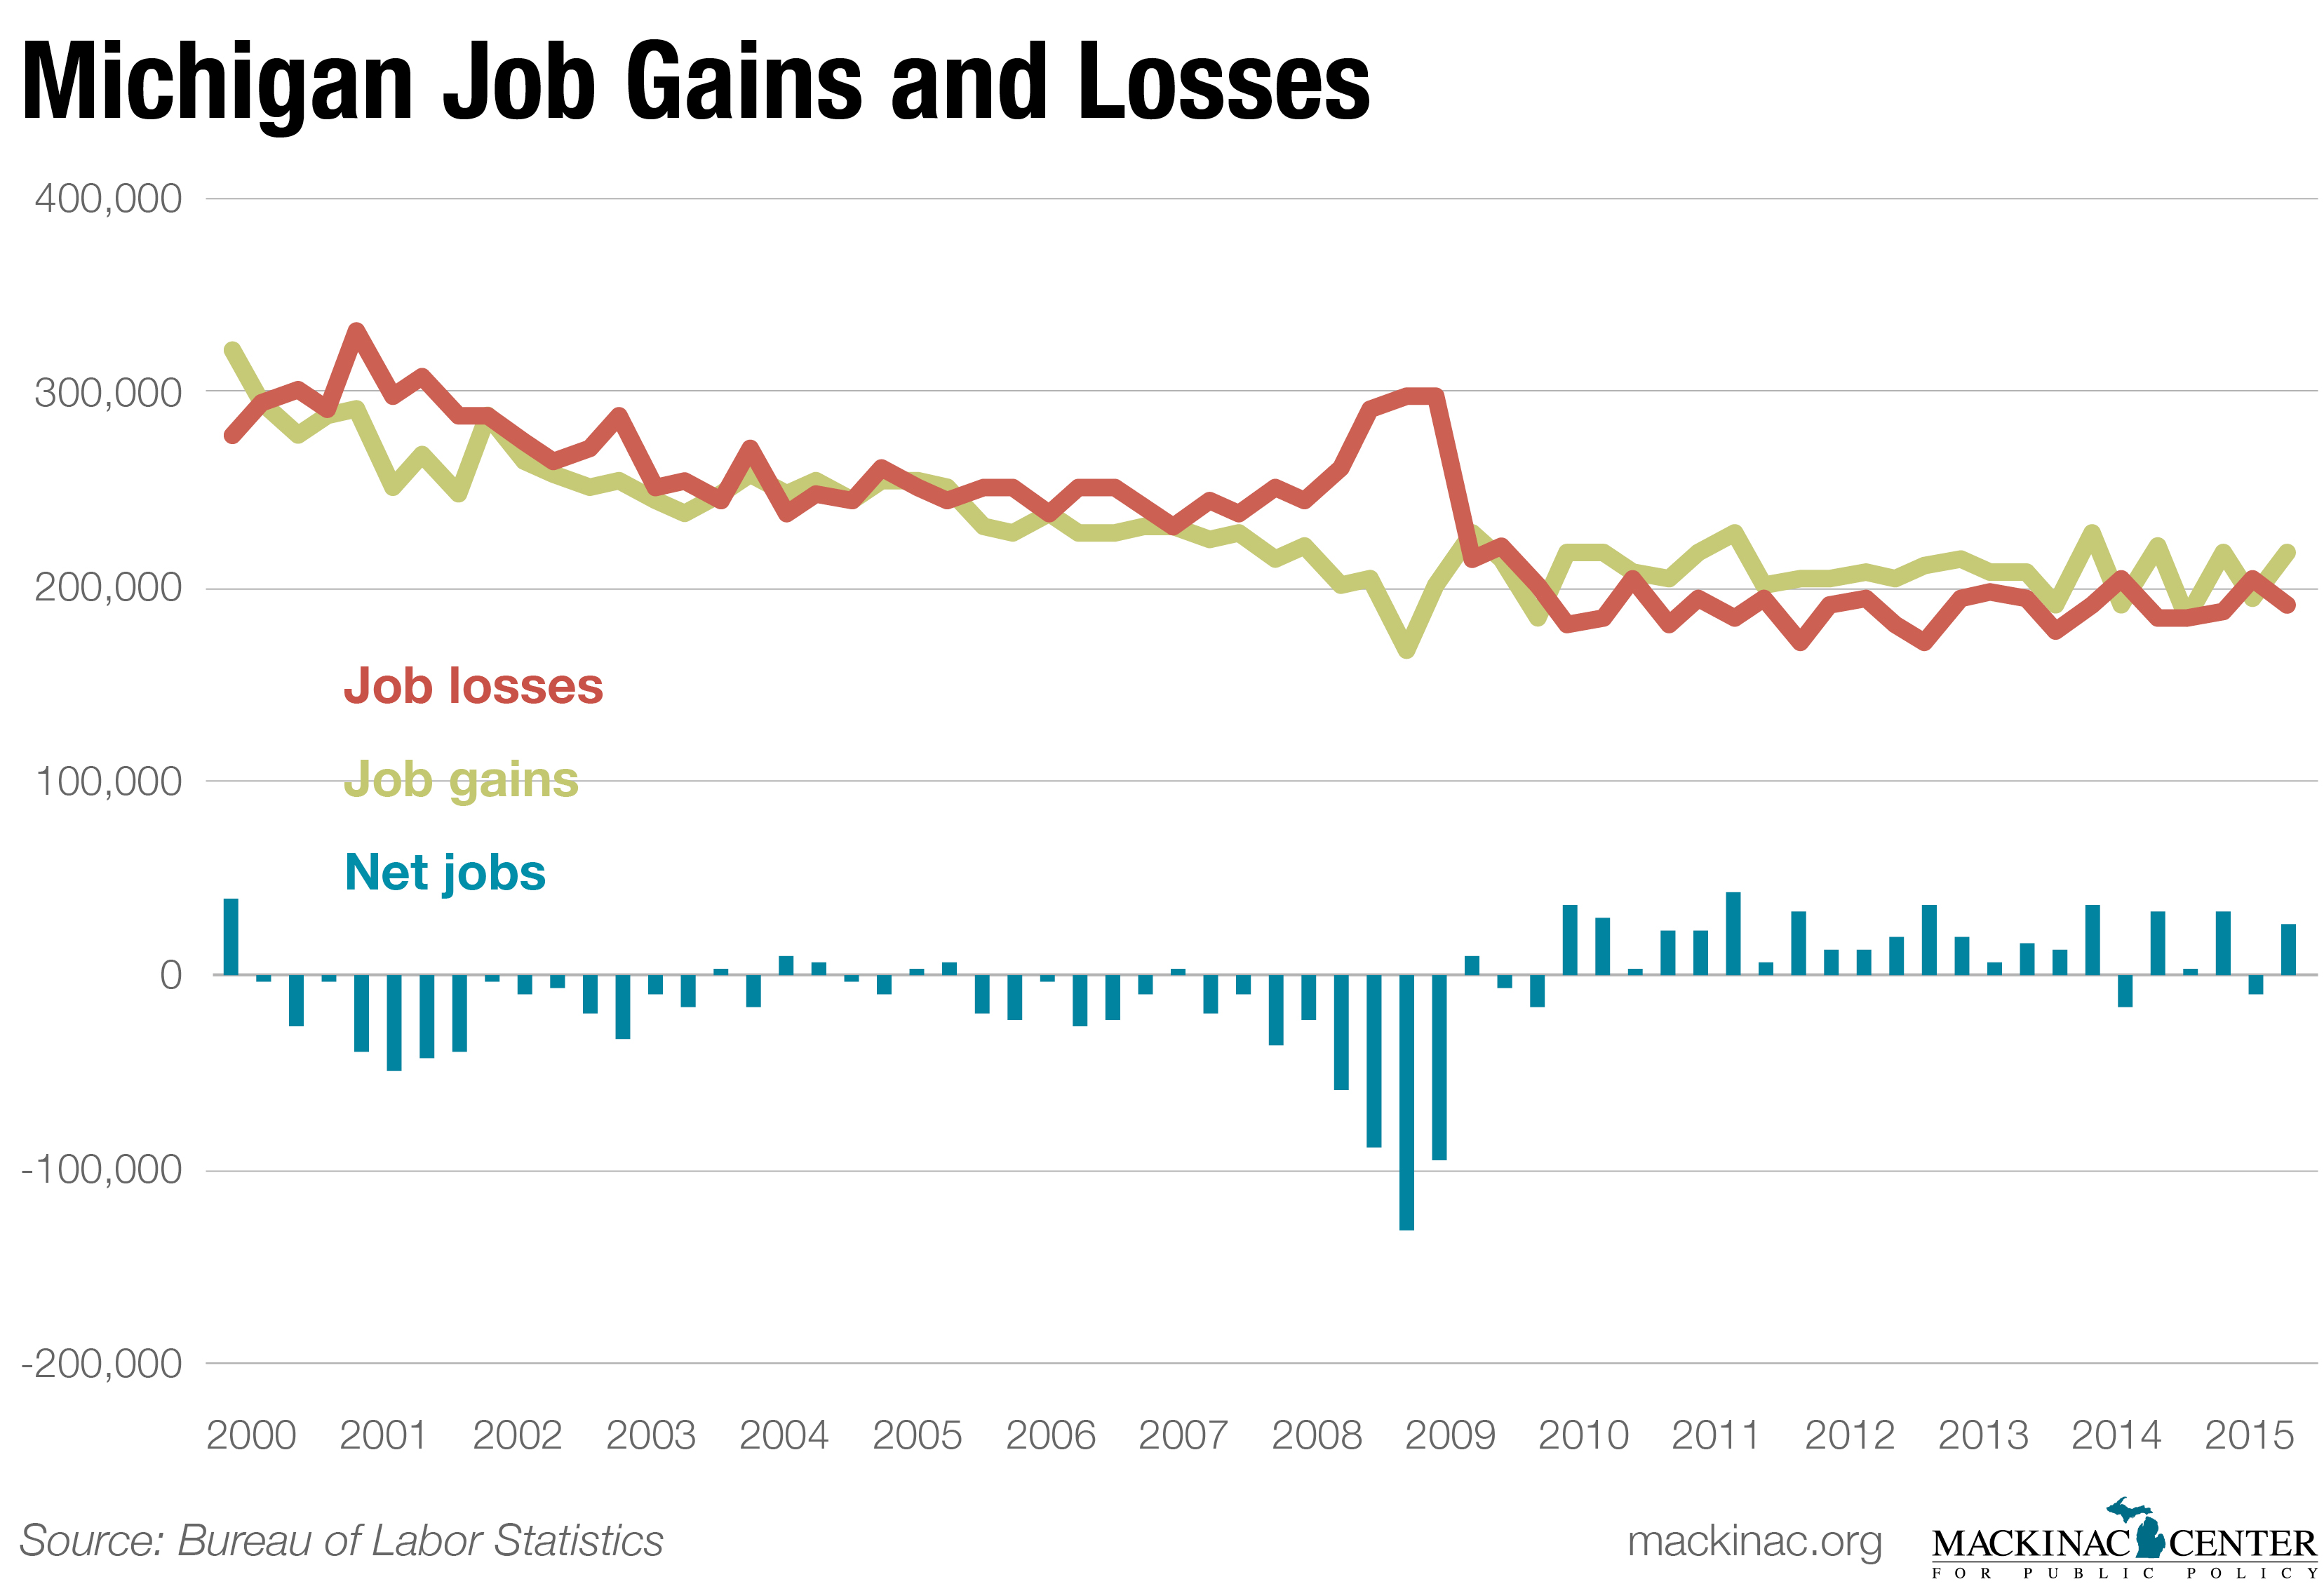 Graphic 2: Job Gains and Job Losses in Michigan, 2000-2015 - click to enlarge